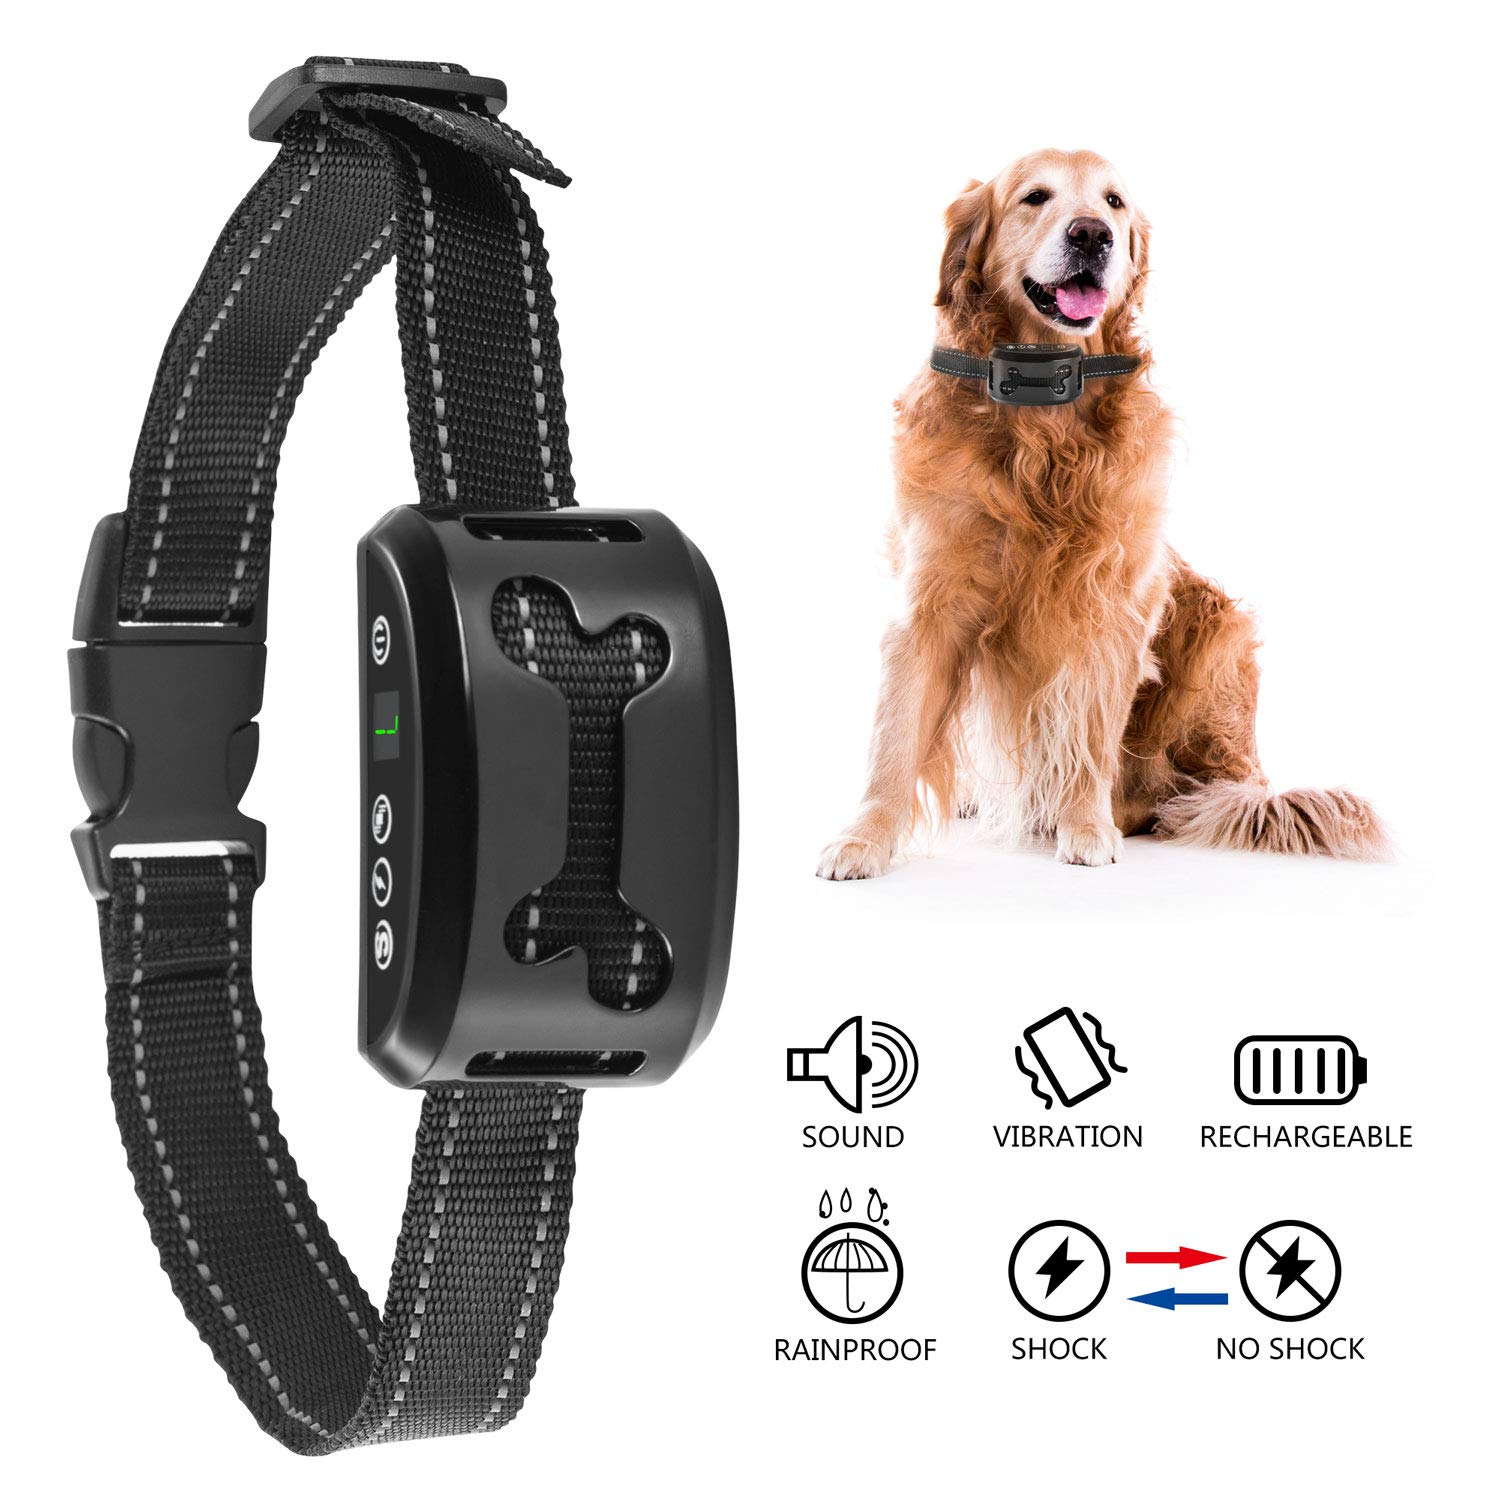 BESTTRENDY Dog Bark Collar Humane Anti Bark Training Collar No Bark Collar Adjustable Collar with Beep Vibration Harmless Shock Rechargeable Stop Barking Collar for Small Medium Large Dog Pet Black